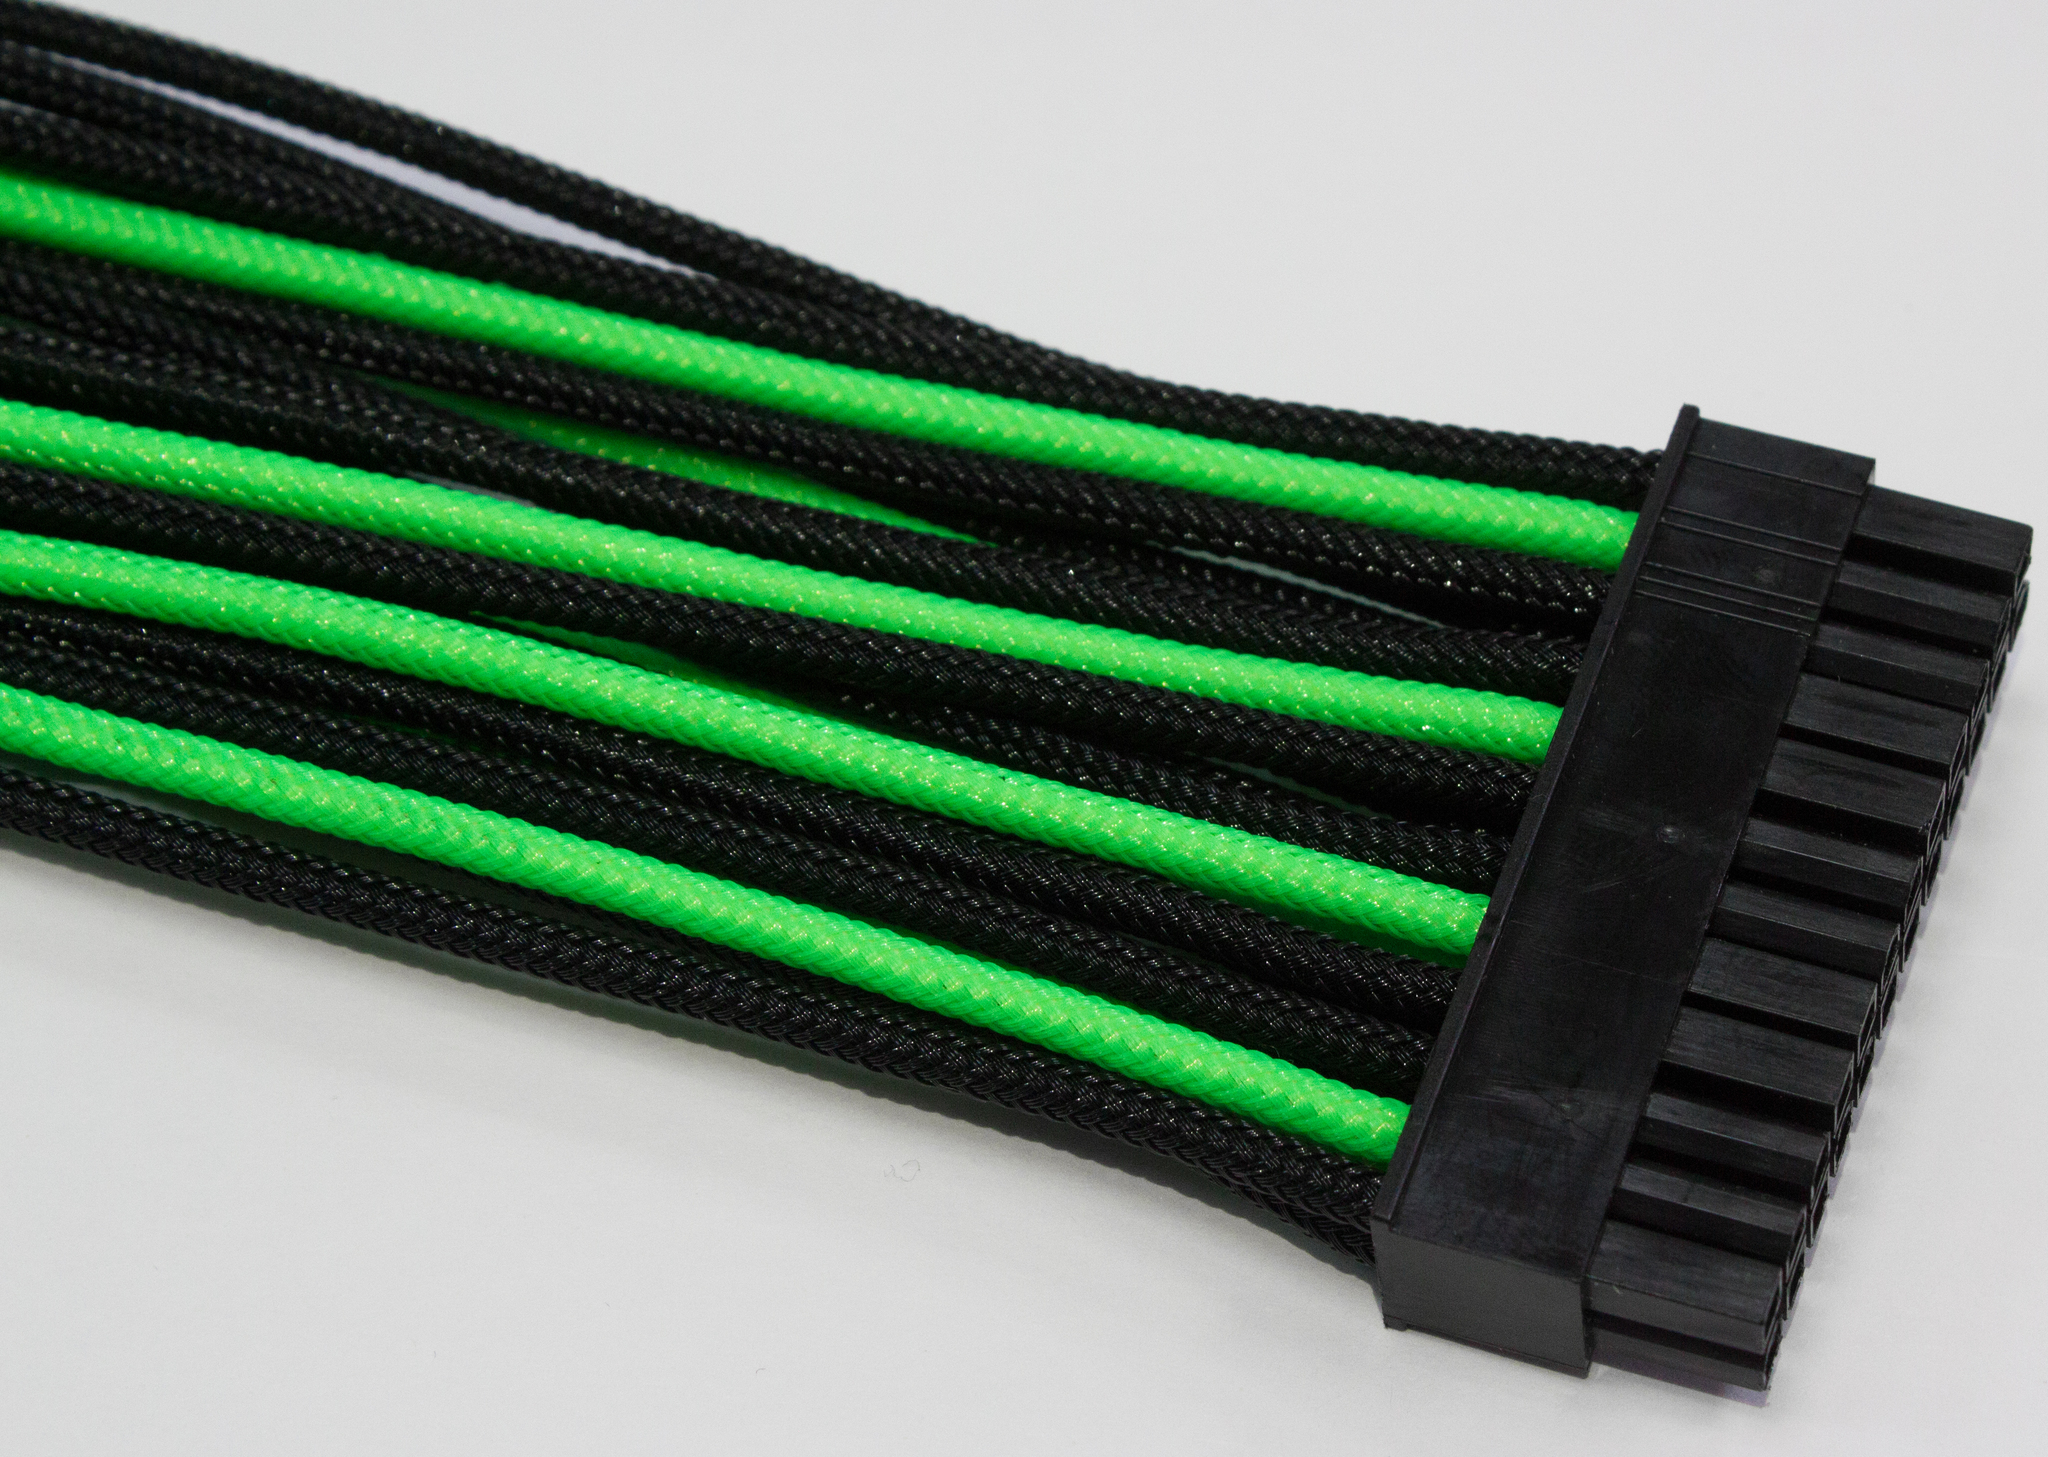 Удлинитель Power Cable 30 cm Black&Green, 24Pin ATX M/F